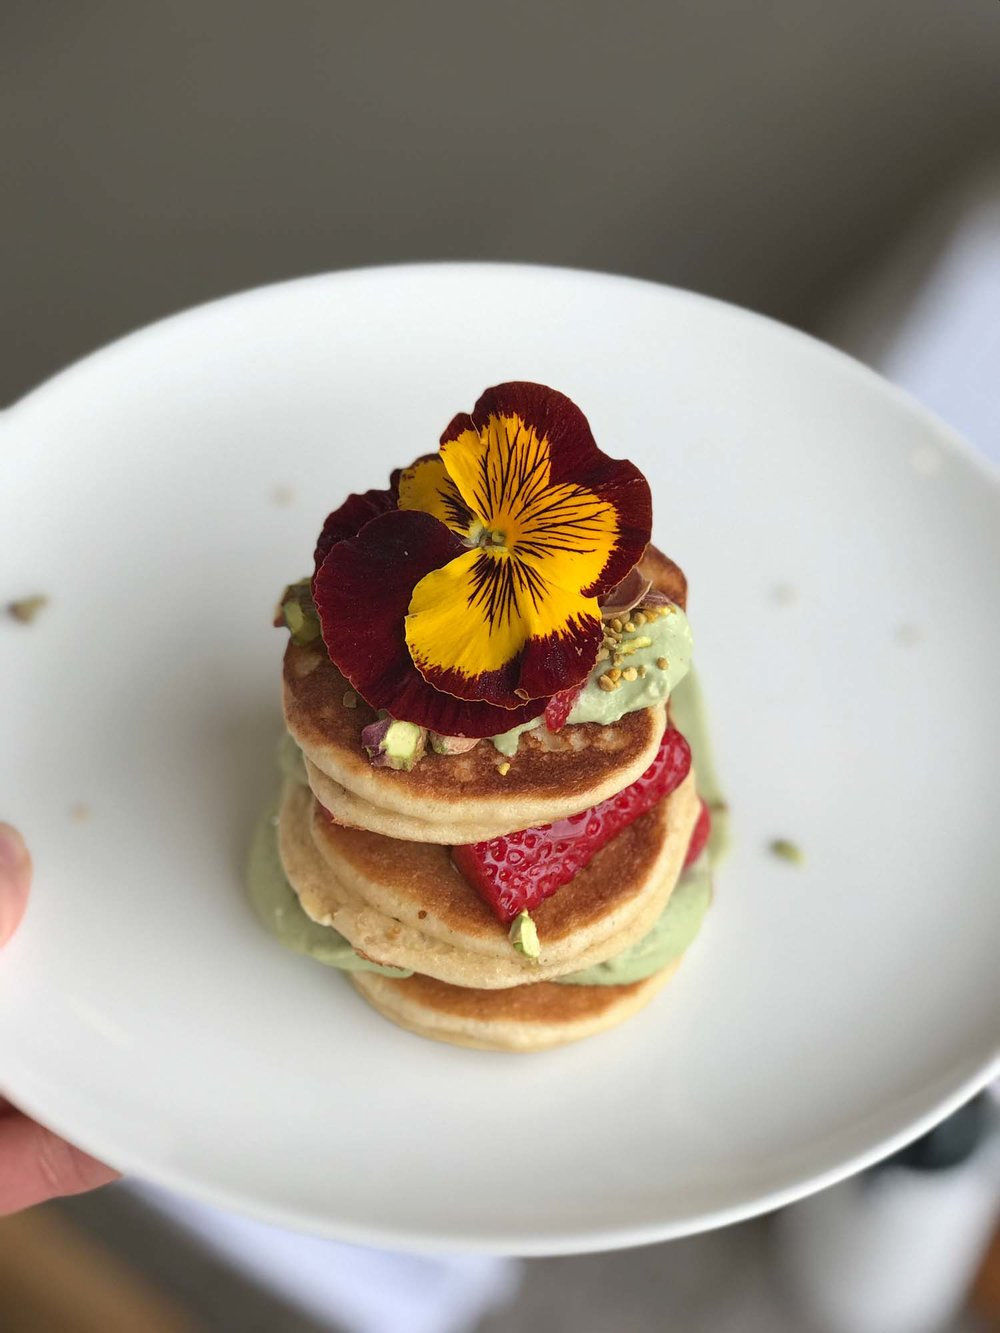 Ben's dairy-free and delicious almond pancakes with matcha cream and strawberries